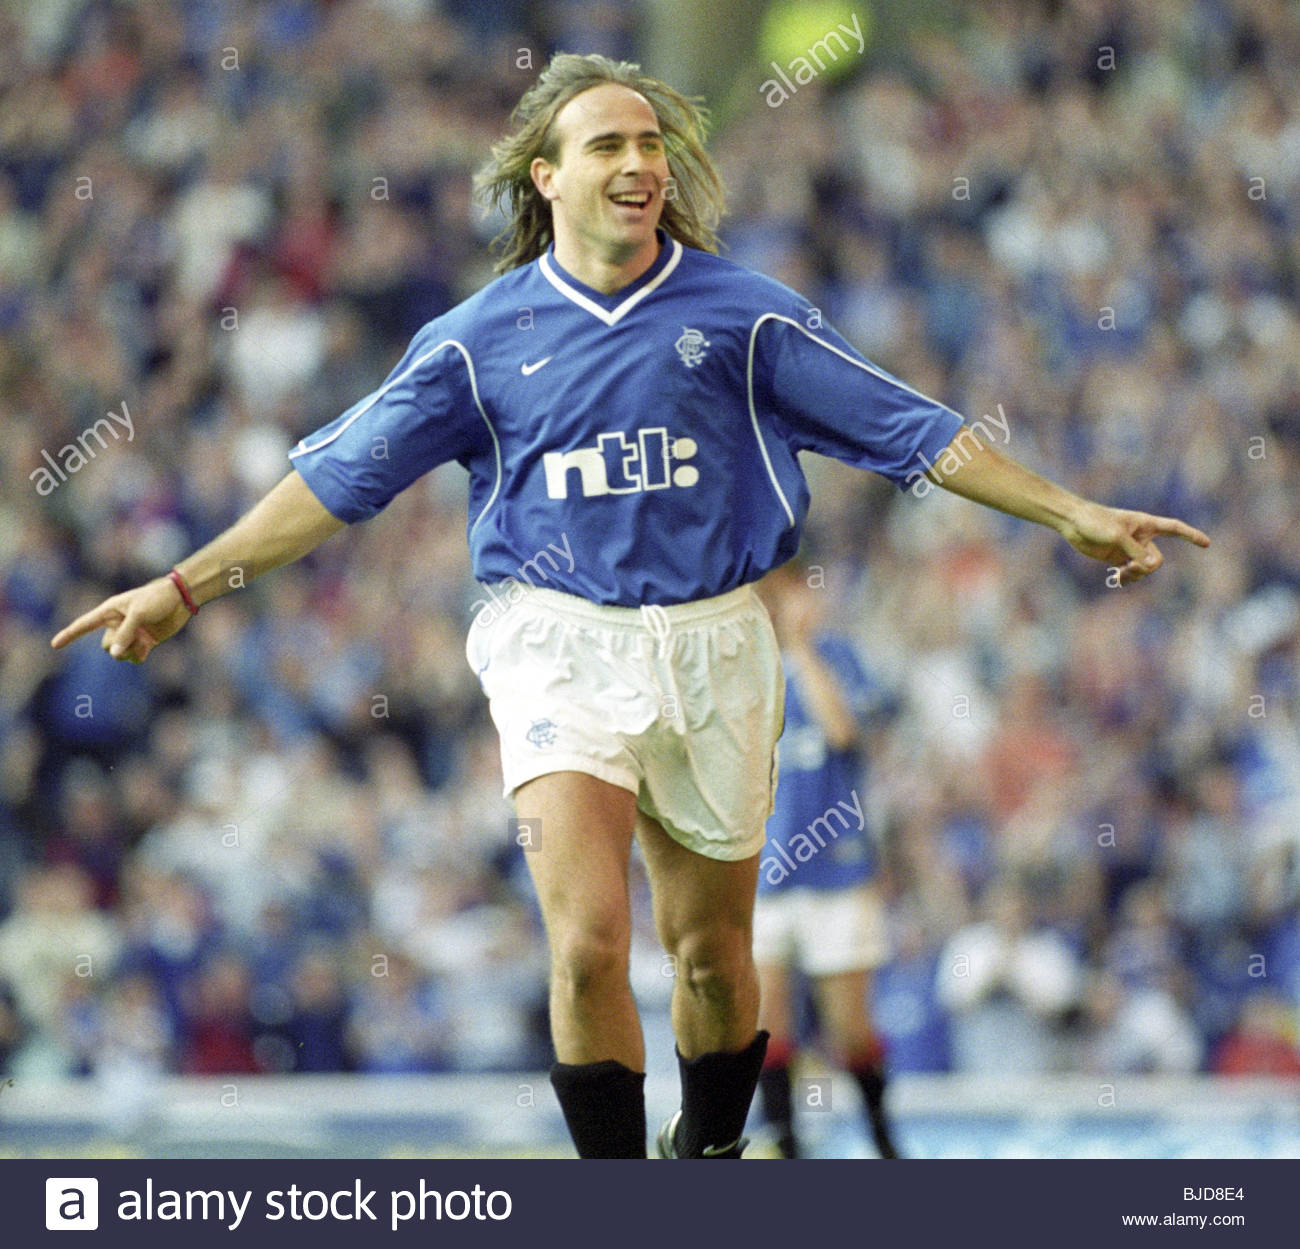 30/04/00 SPL RANGERS V DUNDEE (3-0) IBROX - GLASGOW Sebastian Rozental celebrates after scoring Rangers' third - Stock Image